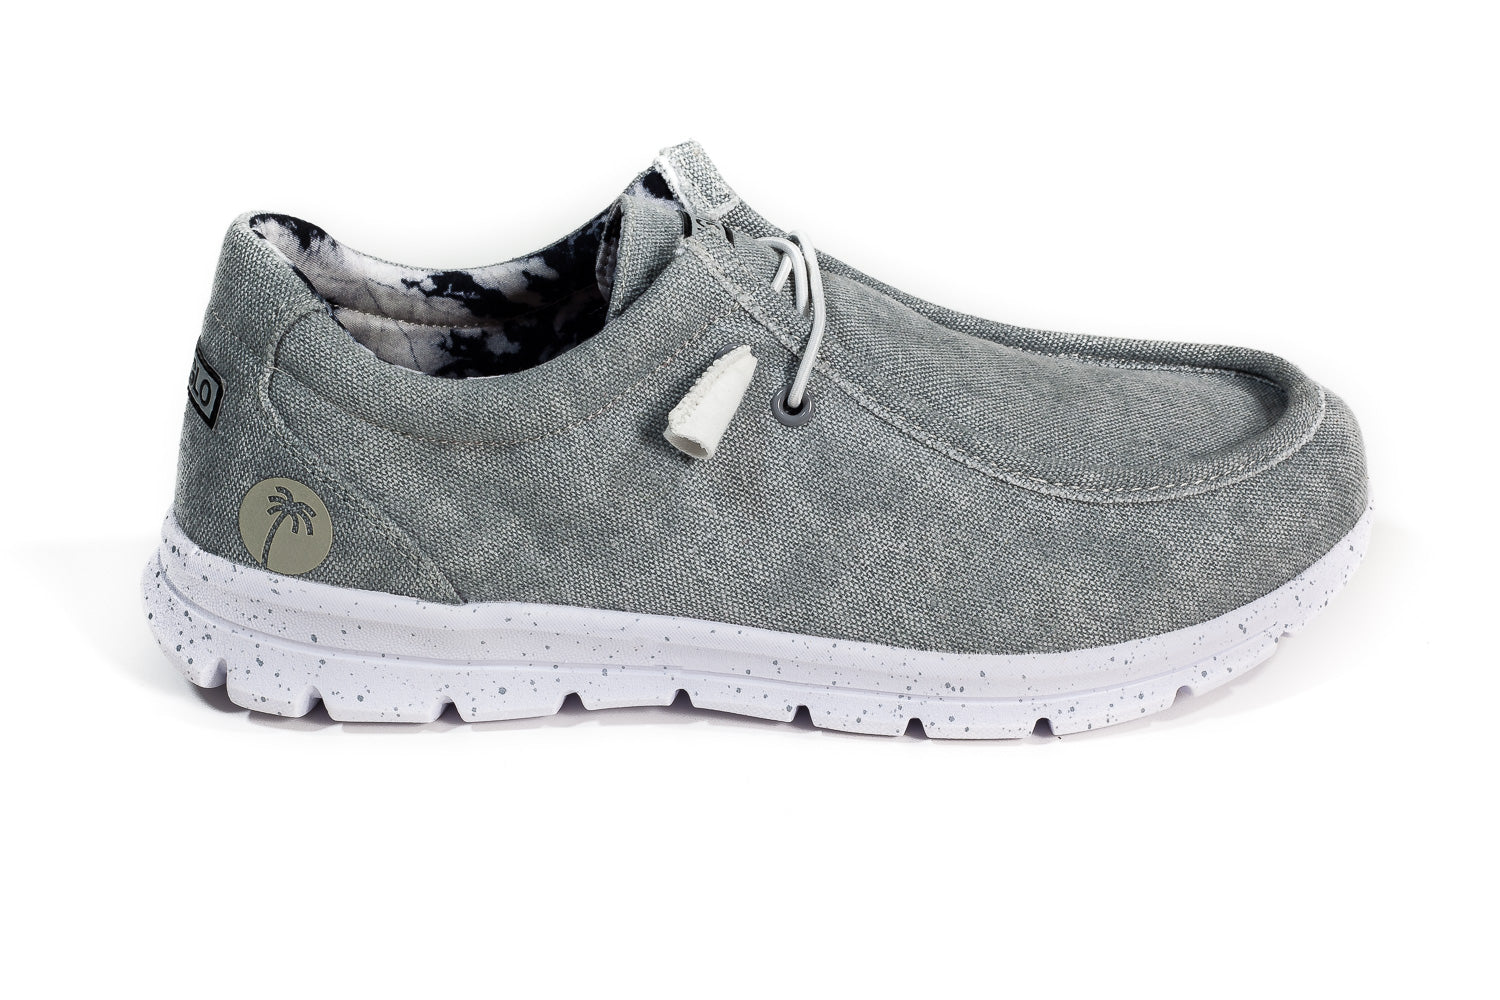 Scarpa JUNGLO Light grey